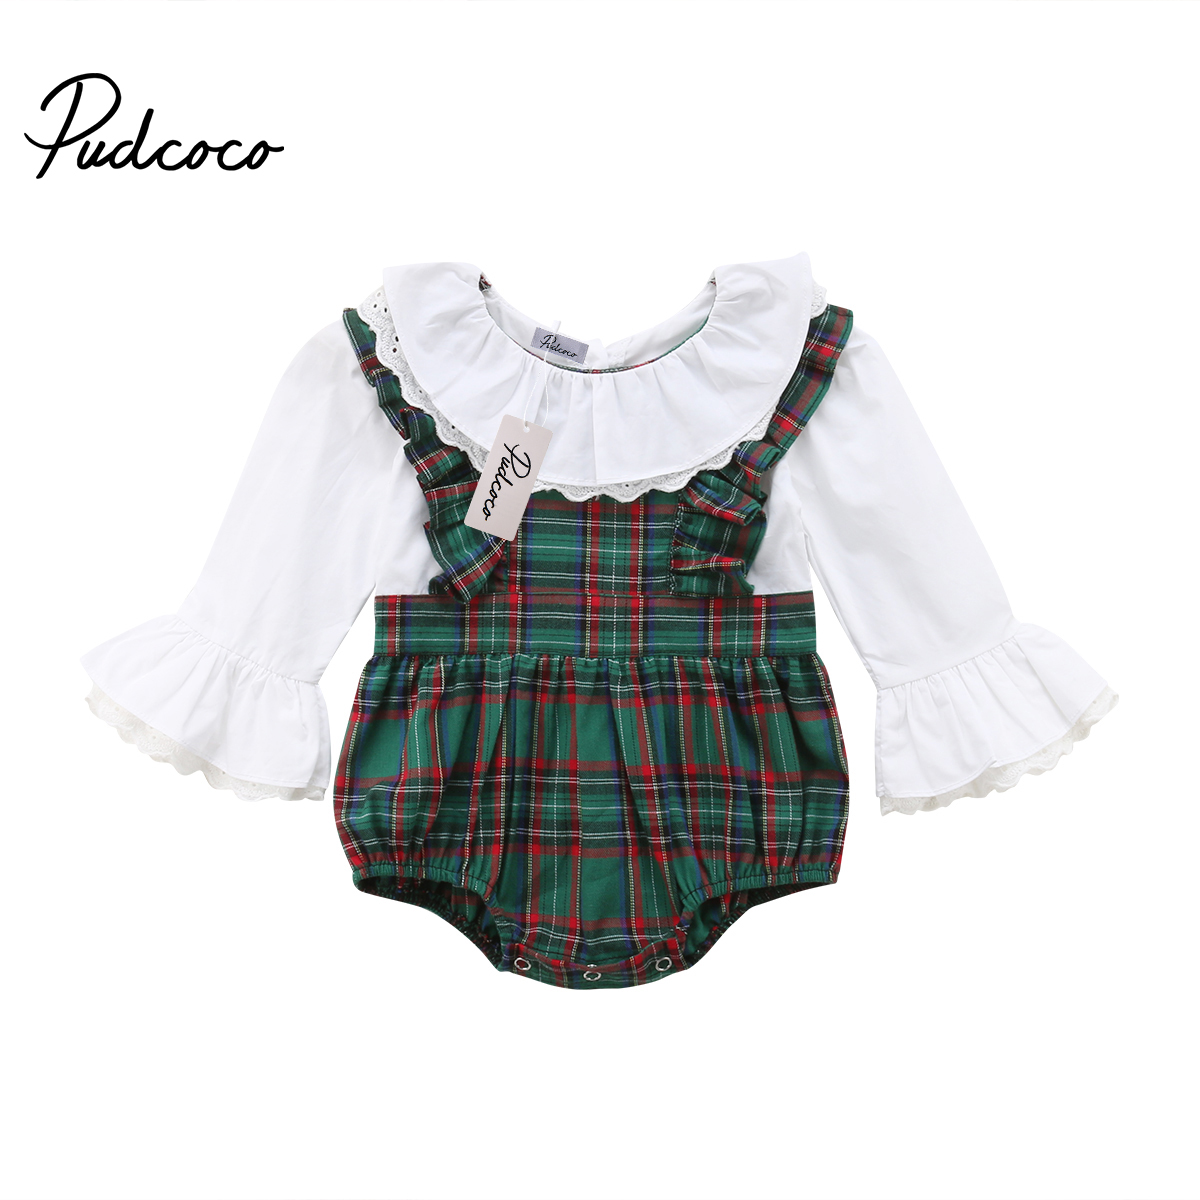 Sweet Newborn Baby Girls Kids Plaid Peter Pan Collar Romper Jumpsuit Flared Sleeve Patchwork Playsuit Cute Outfits Clothes newborn baby girls watermelon clothes kids summer casual sleeveless red romper jumpsuit outfits playsuit 0 24m